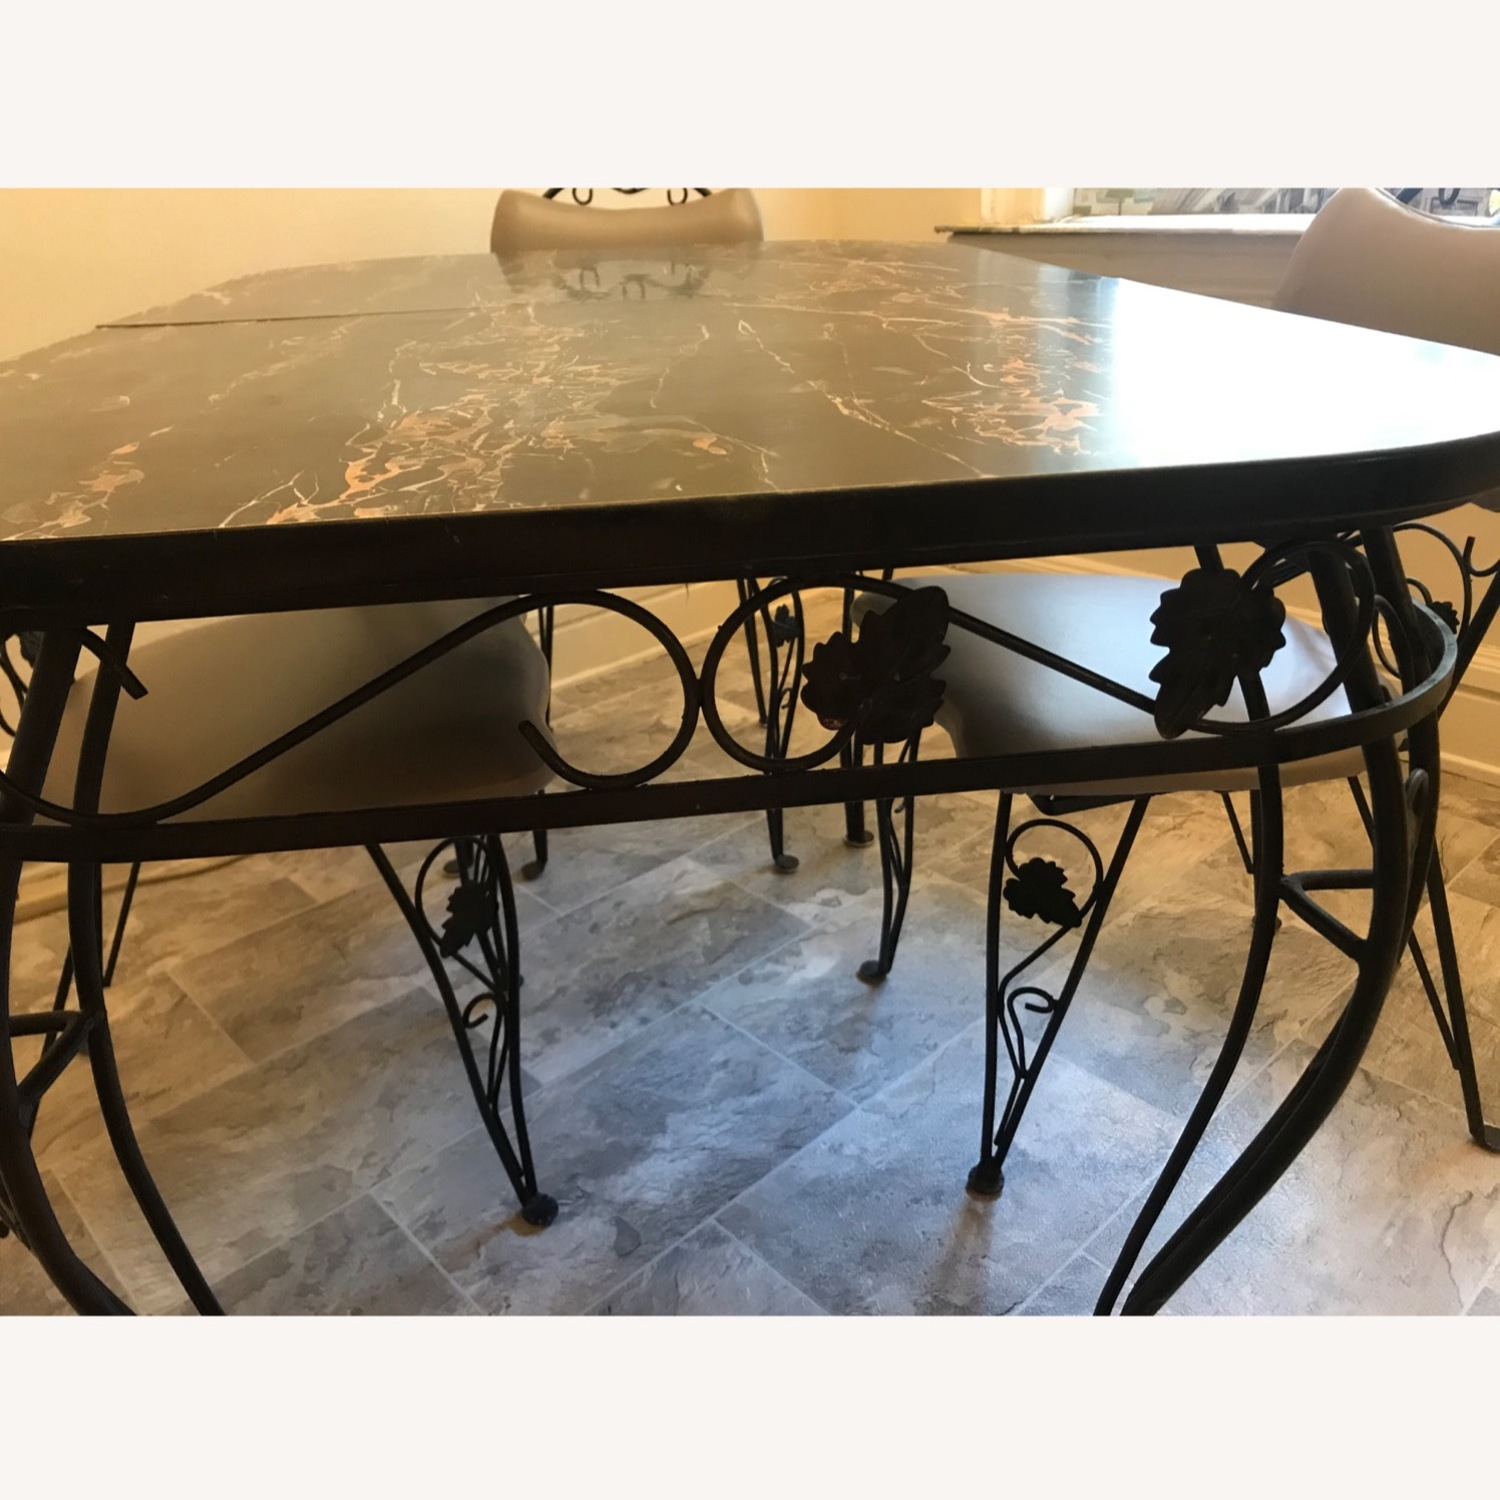 Vintage Wrought Iron / Formica Kitchen Table - image-6